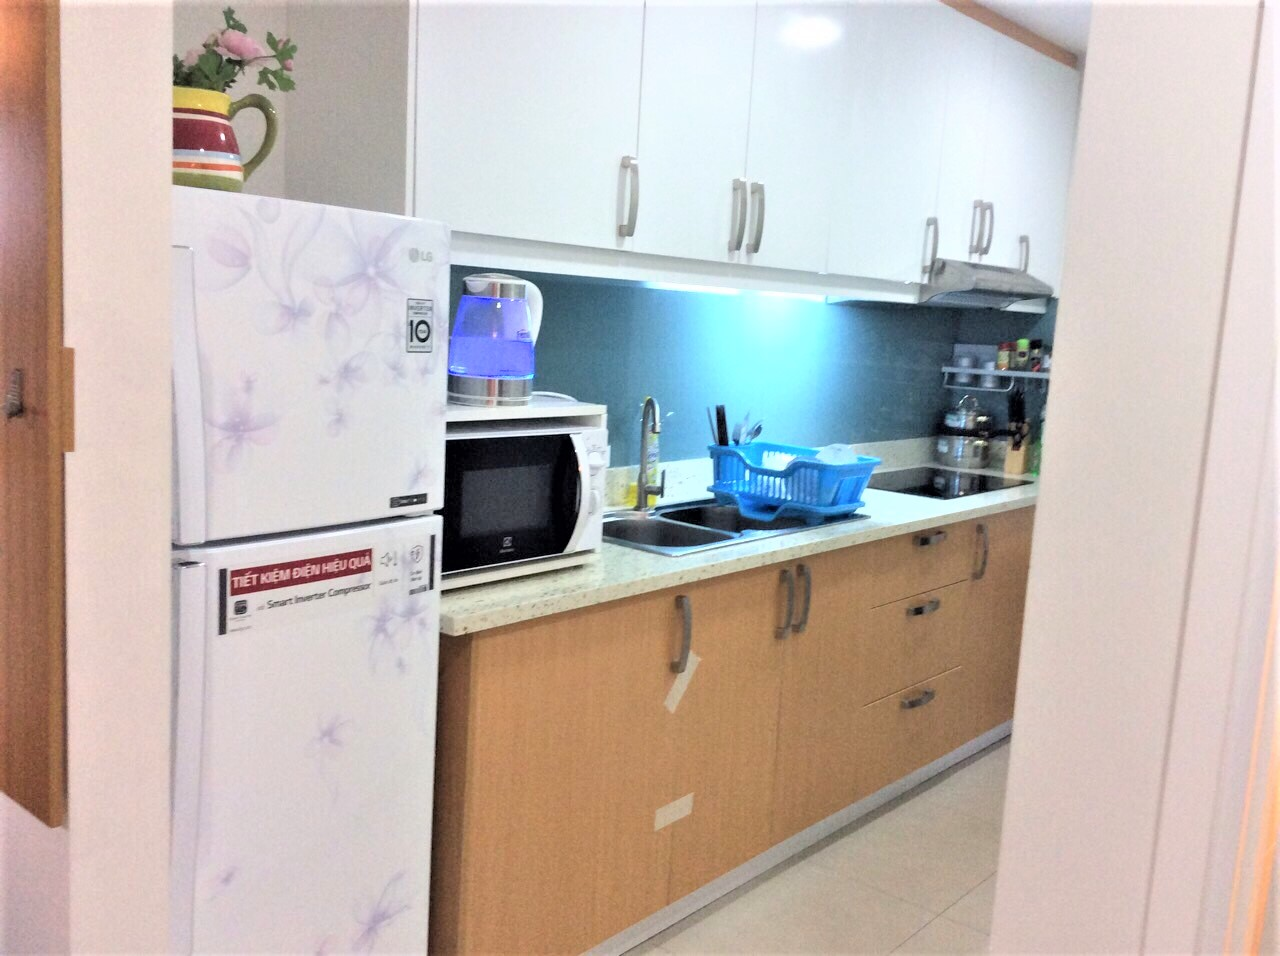 Apartment for rent D214120 (7)